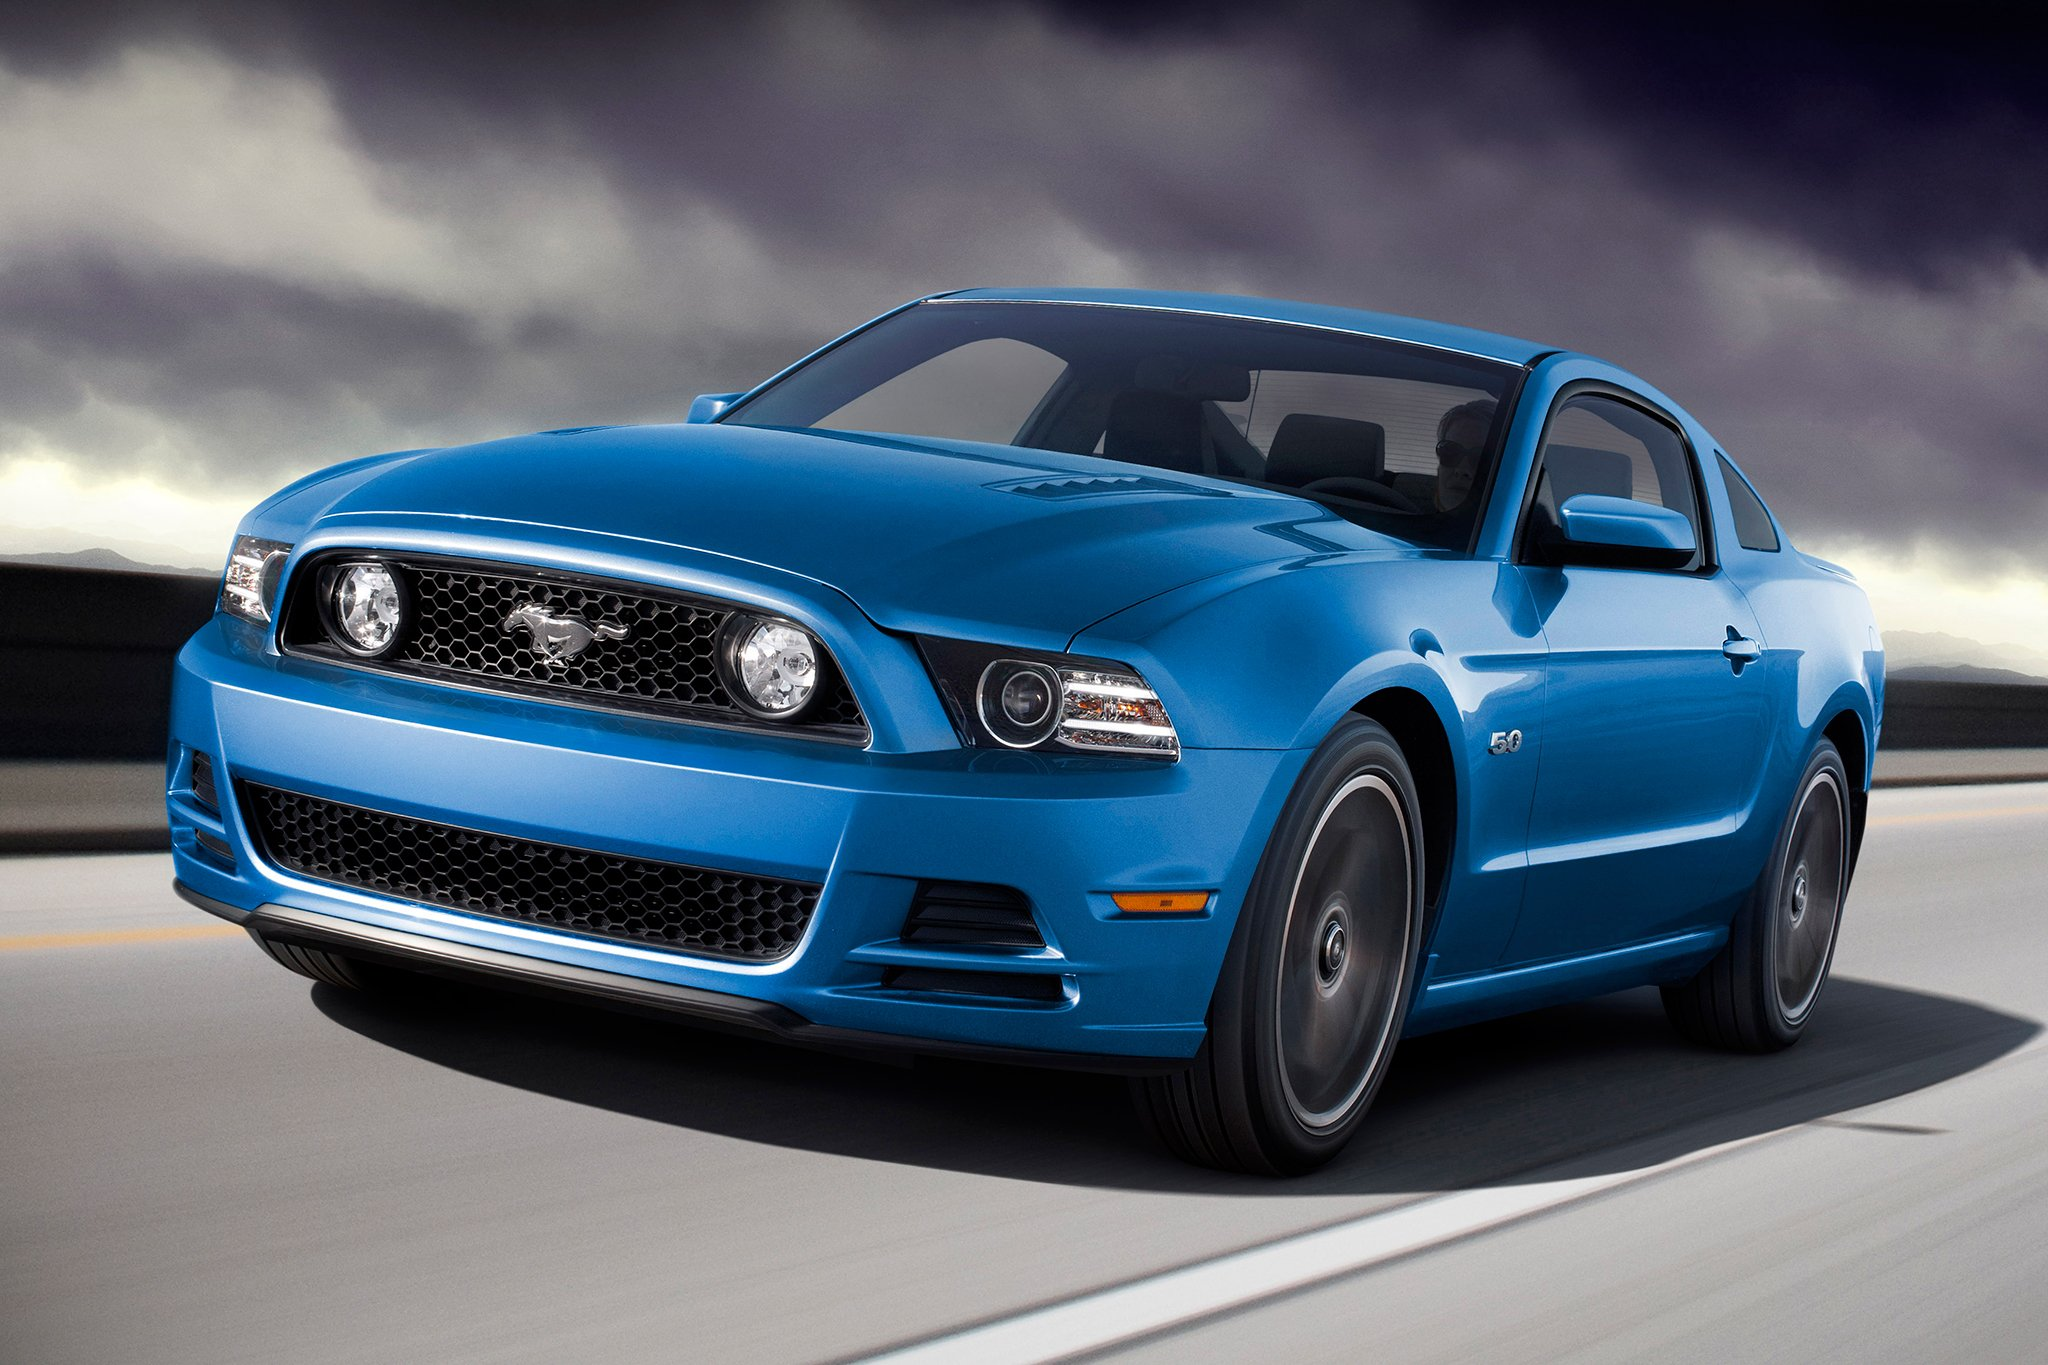 Add Wi-Fi, Smartphone Alerts and Remote Start to 2010-2016 Mustangs